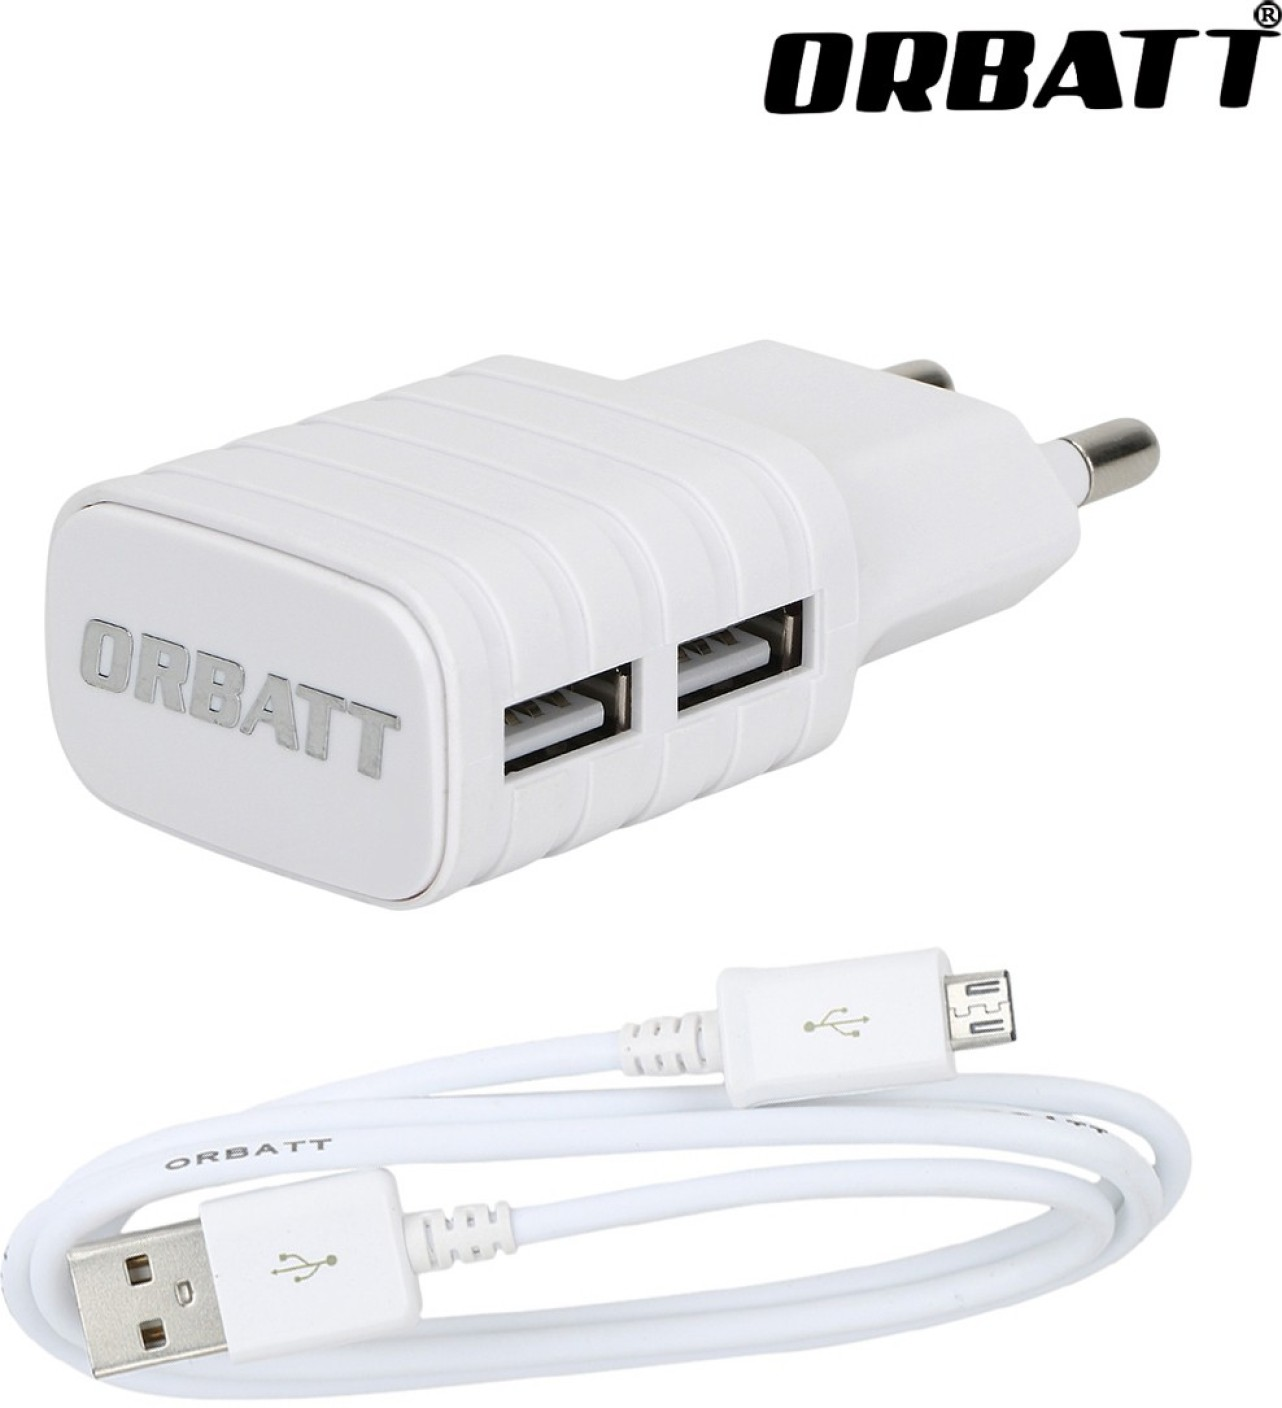 Cell phones amp accessories gt cell phone accessories gt chargers - Orbatt 2 4amp Charger2 Usb Mobile Charger On Offer